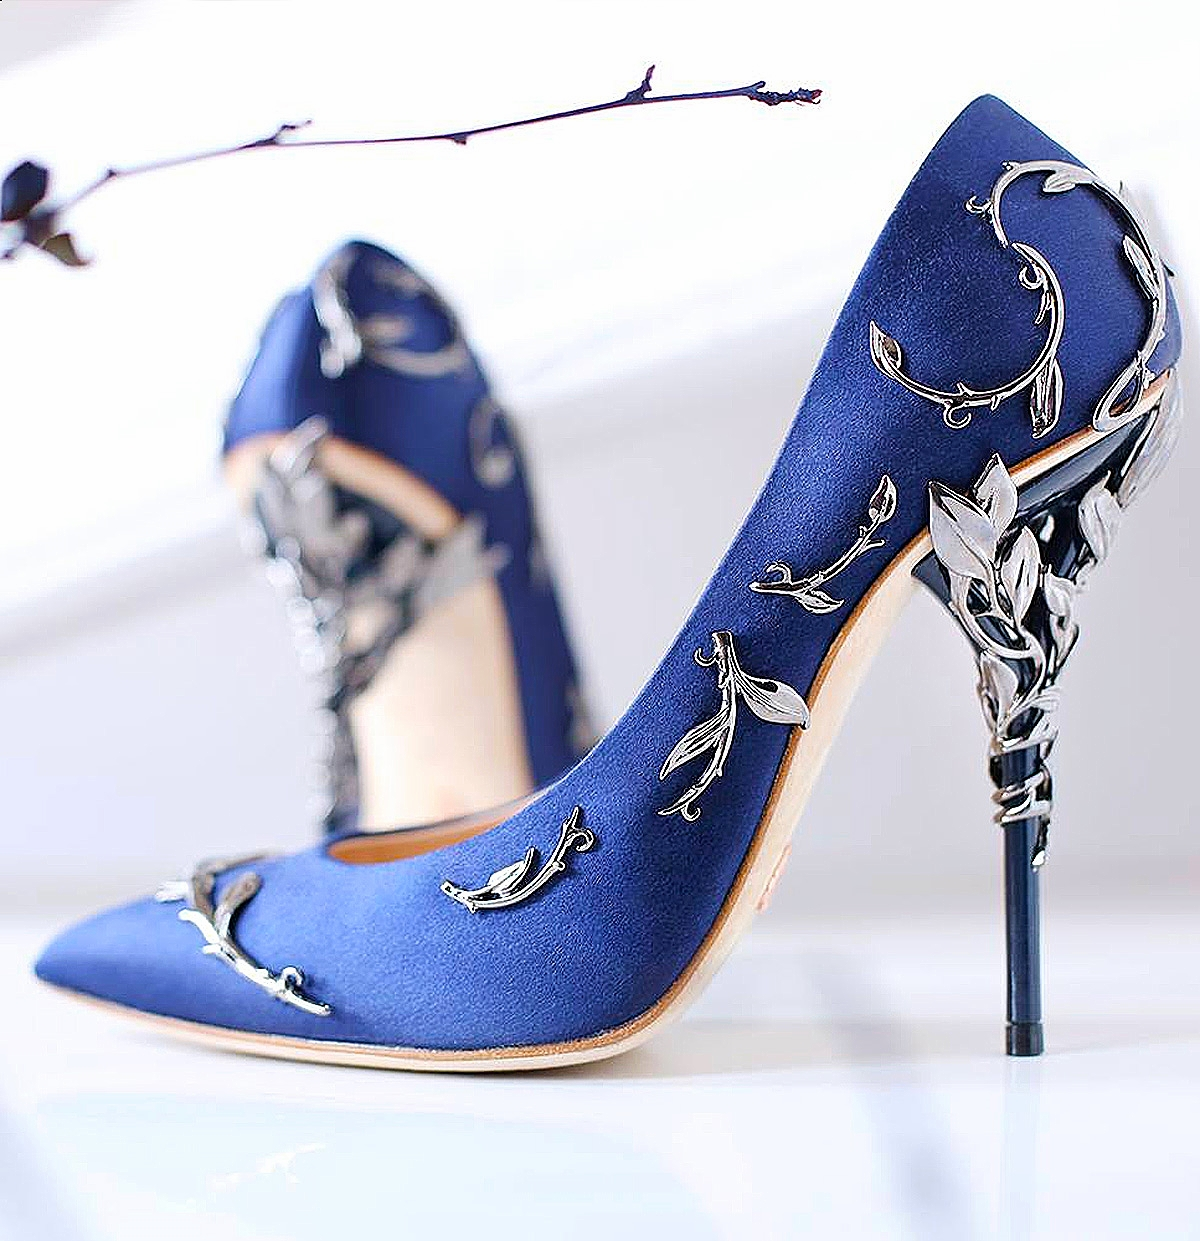 'Eden' Pumps in Midnight Blue AW15/16 pre-order at Harrod's Bourique